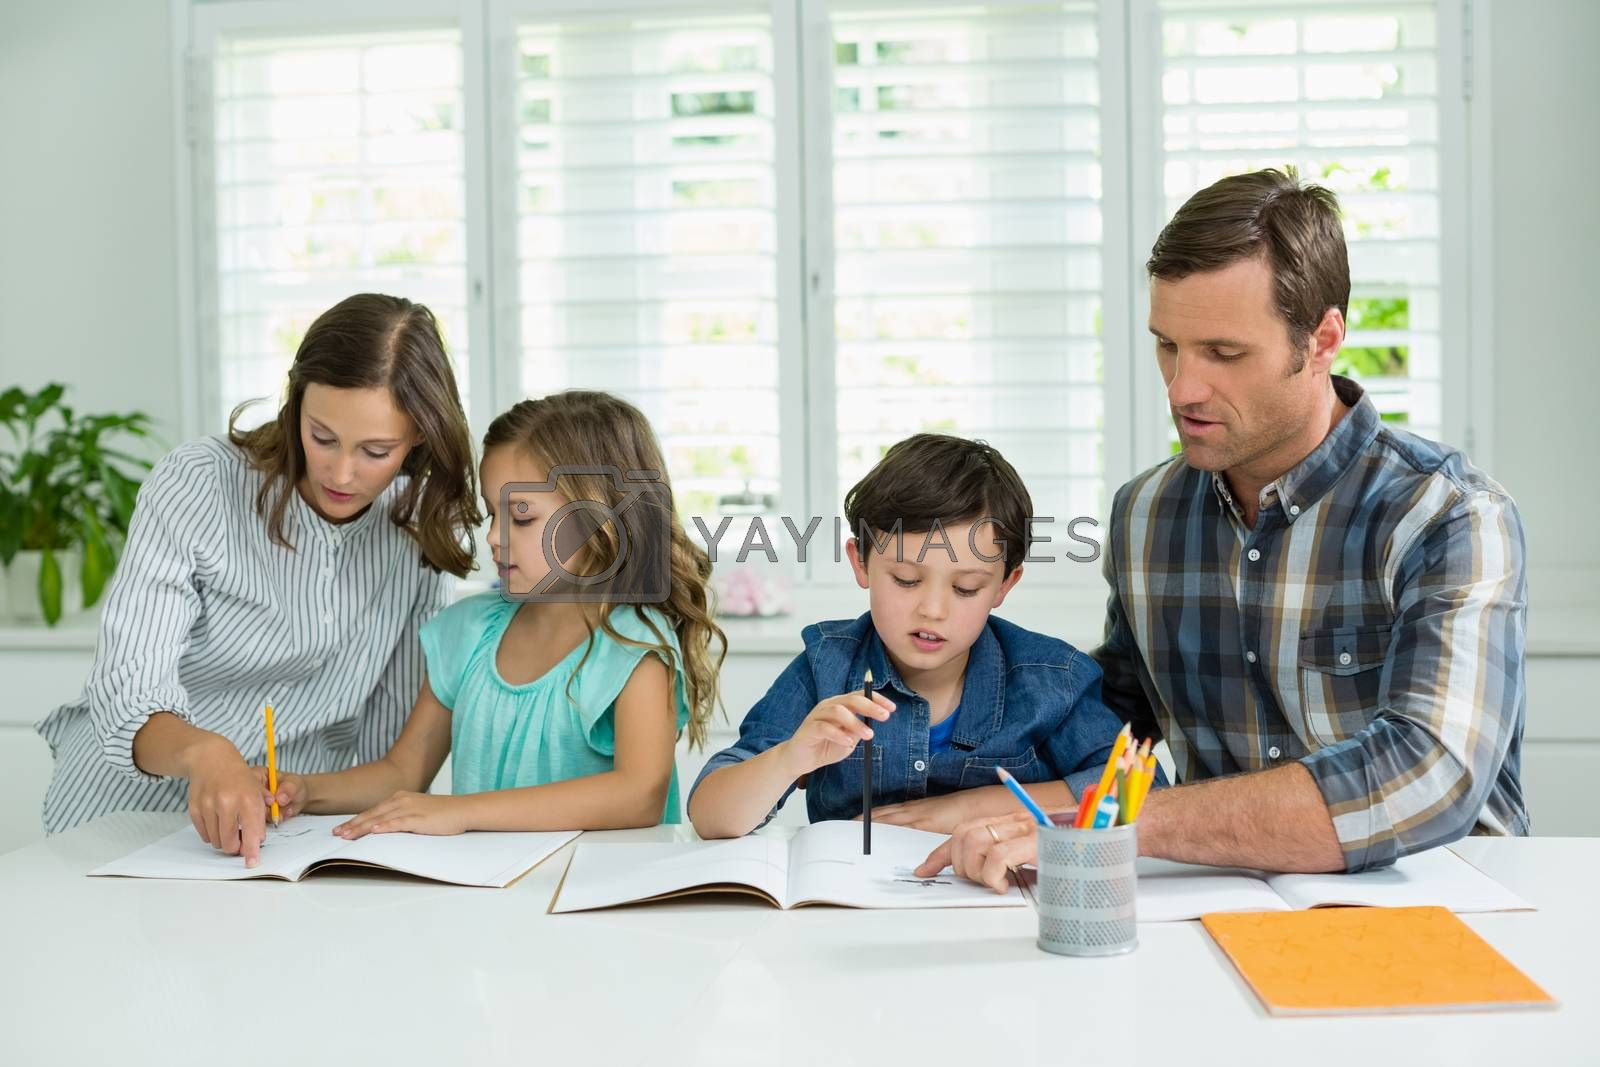 Siblings getting help with homework from parents in living room at home